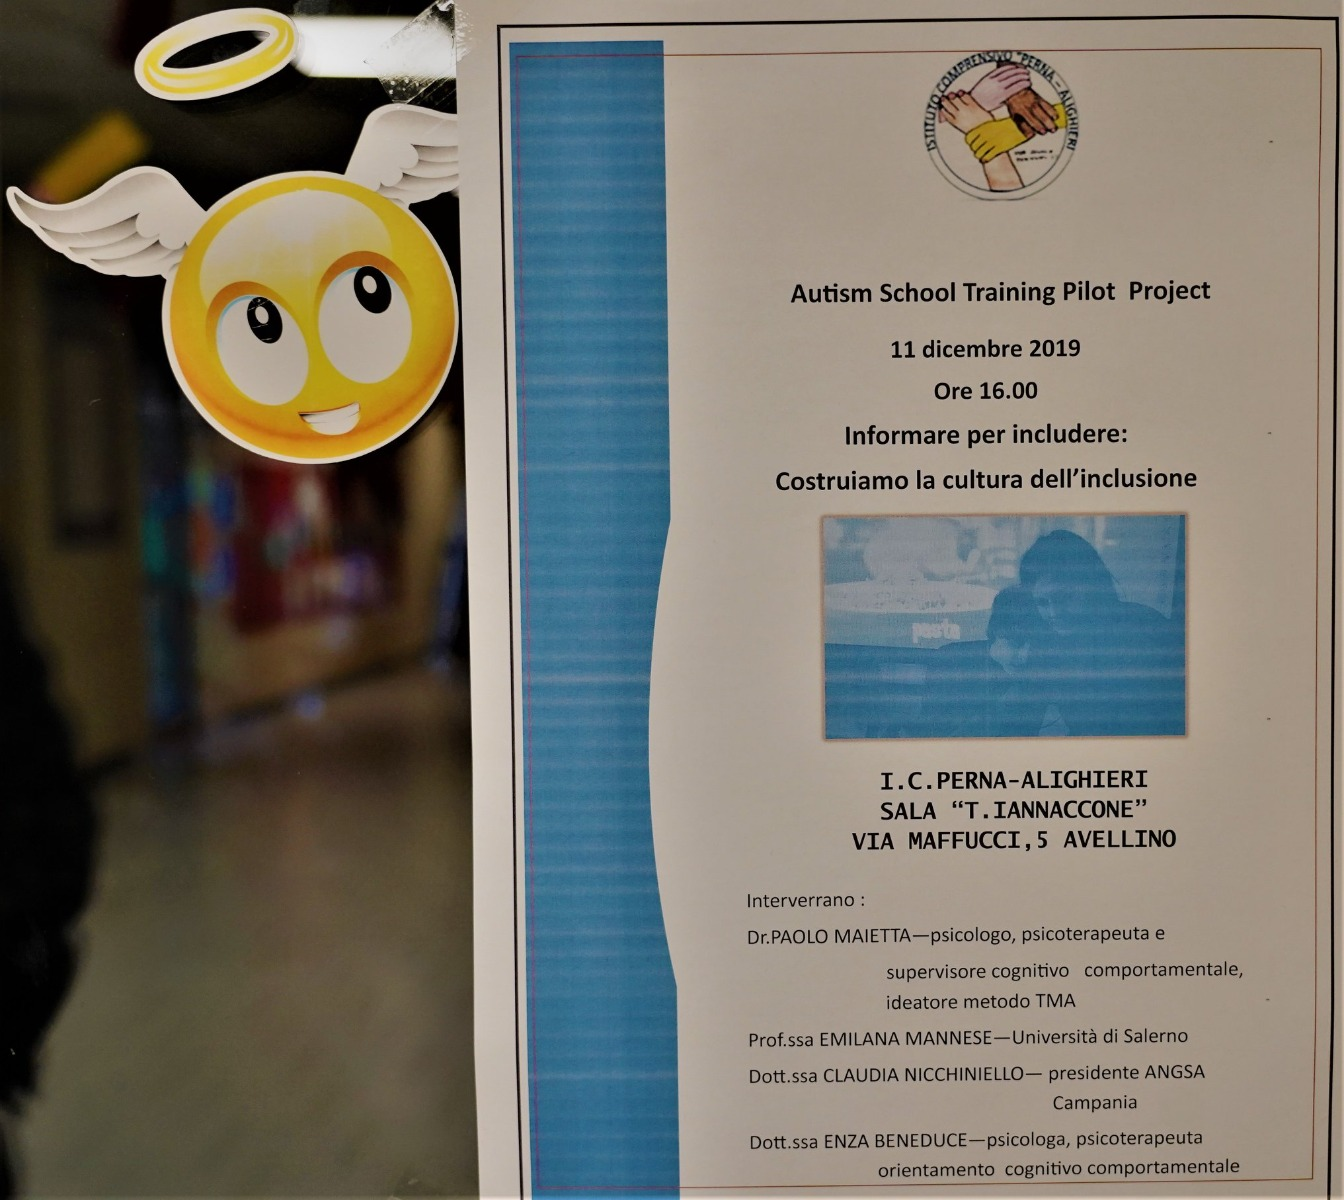 Autism School Training Pilot Project